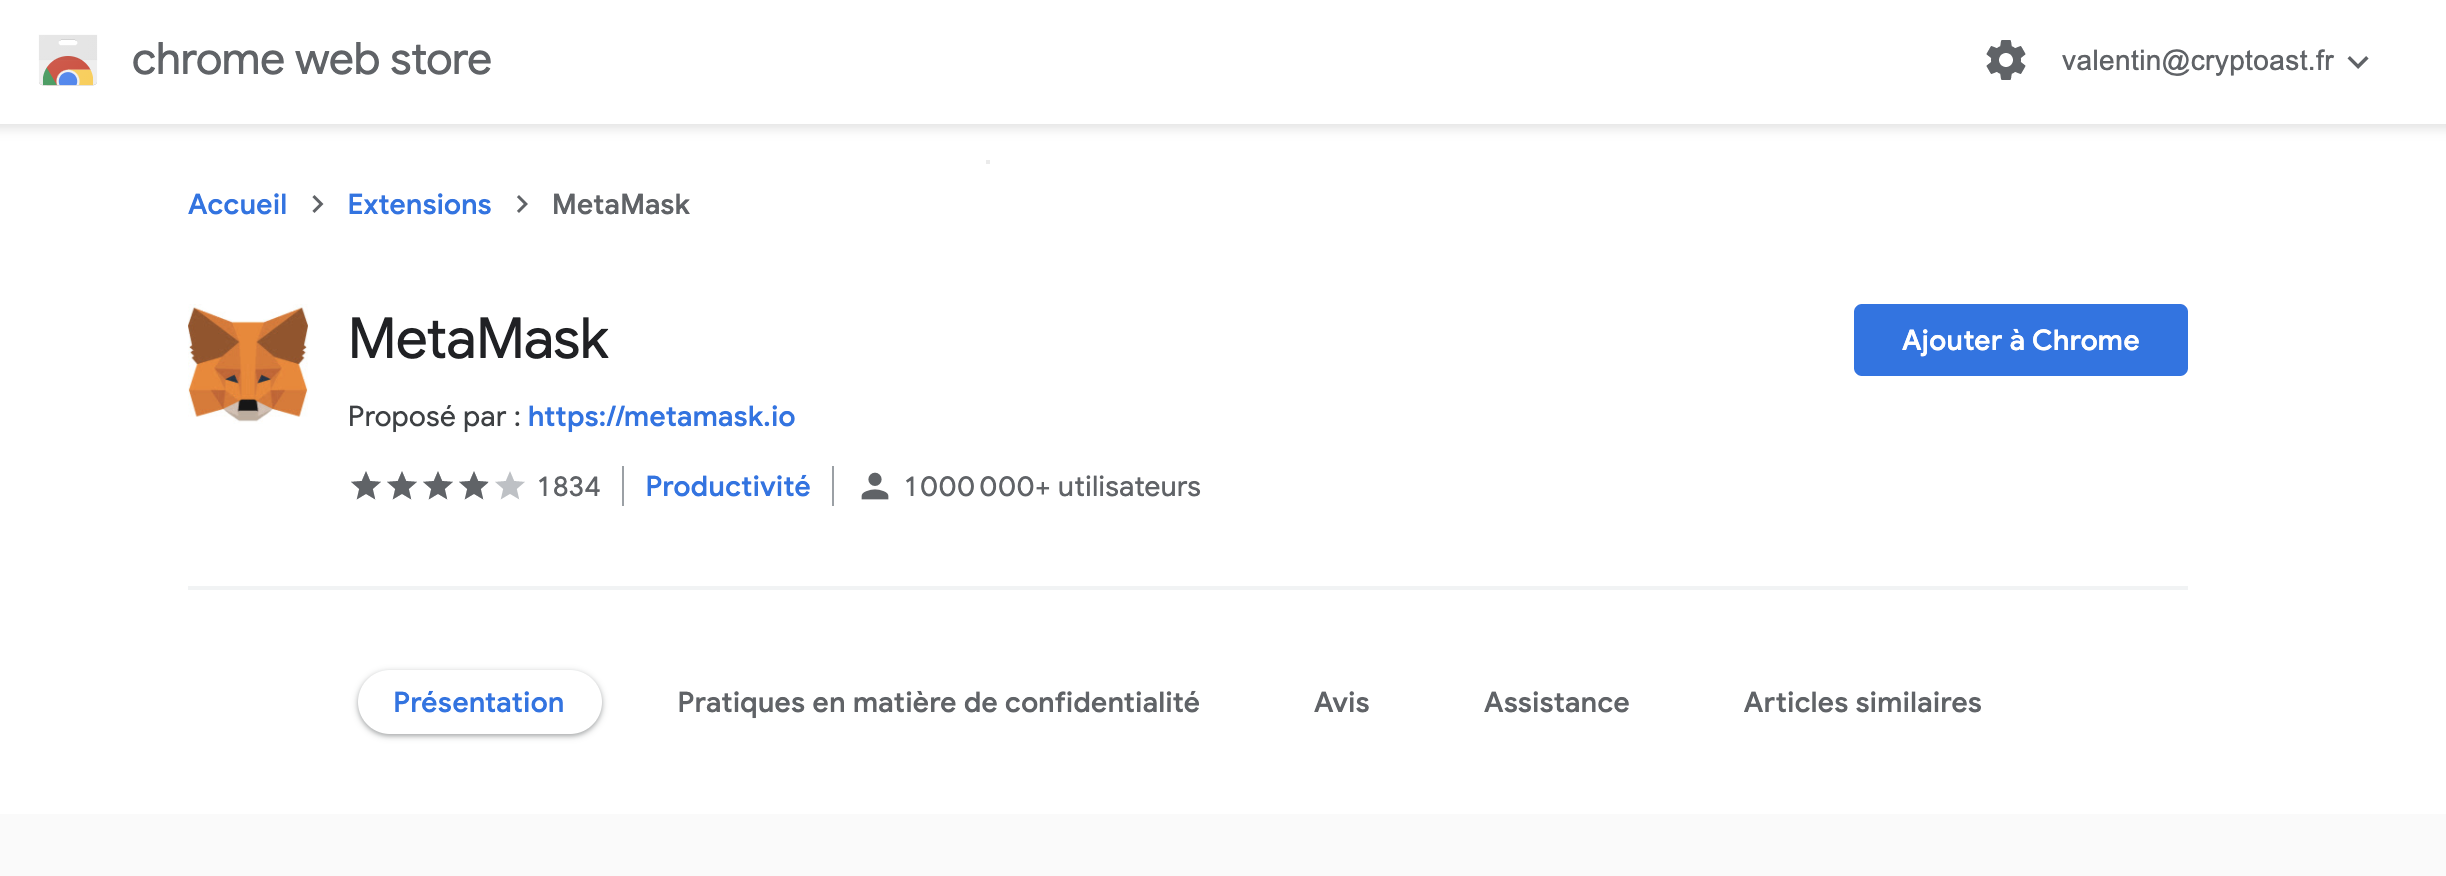 Télécharger Metamask sur le chrome web store.